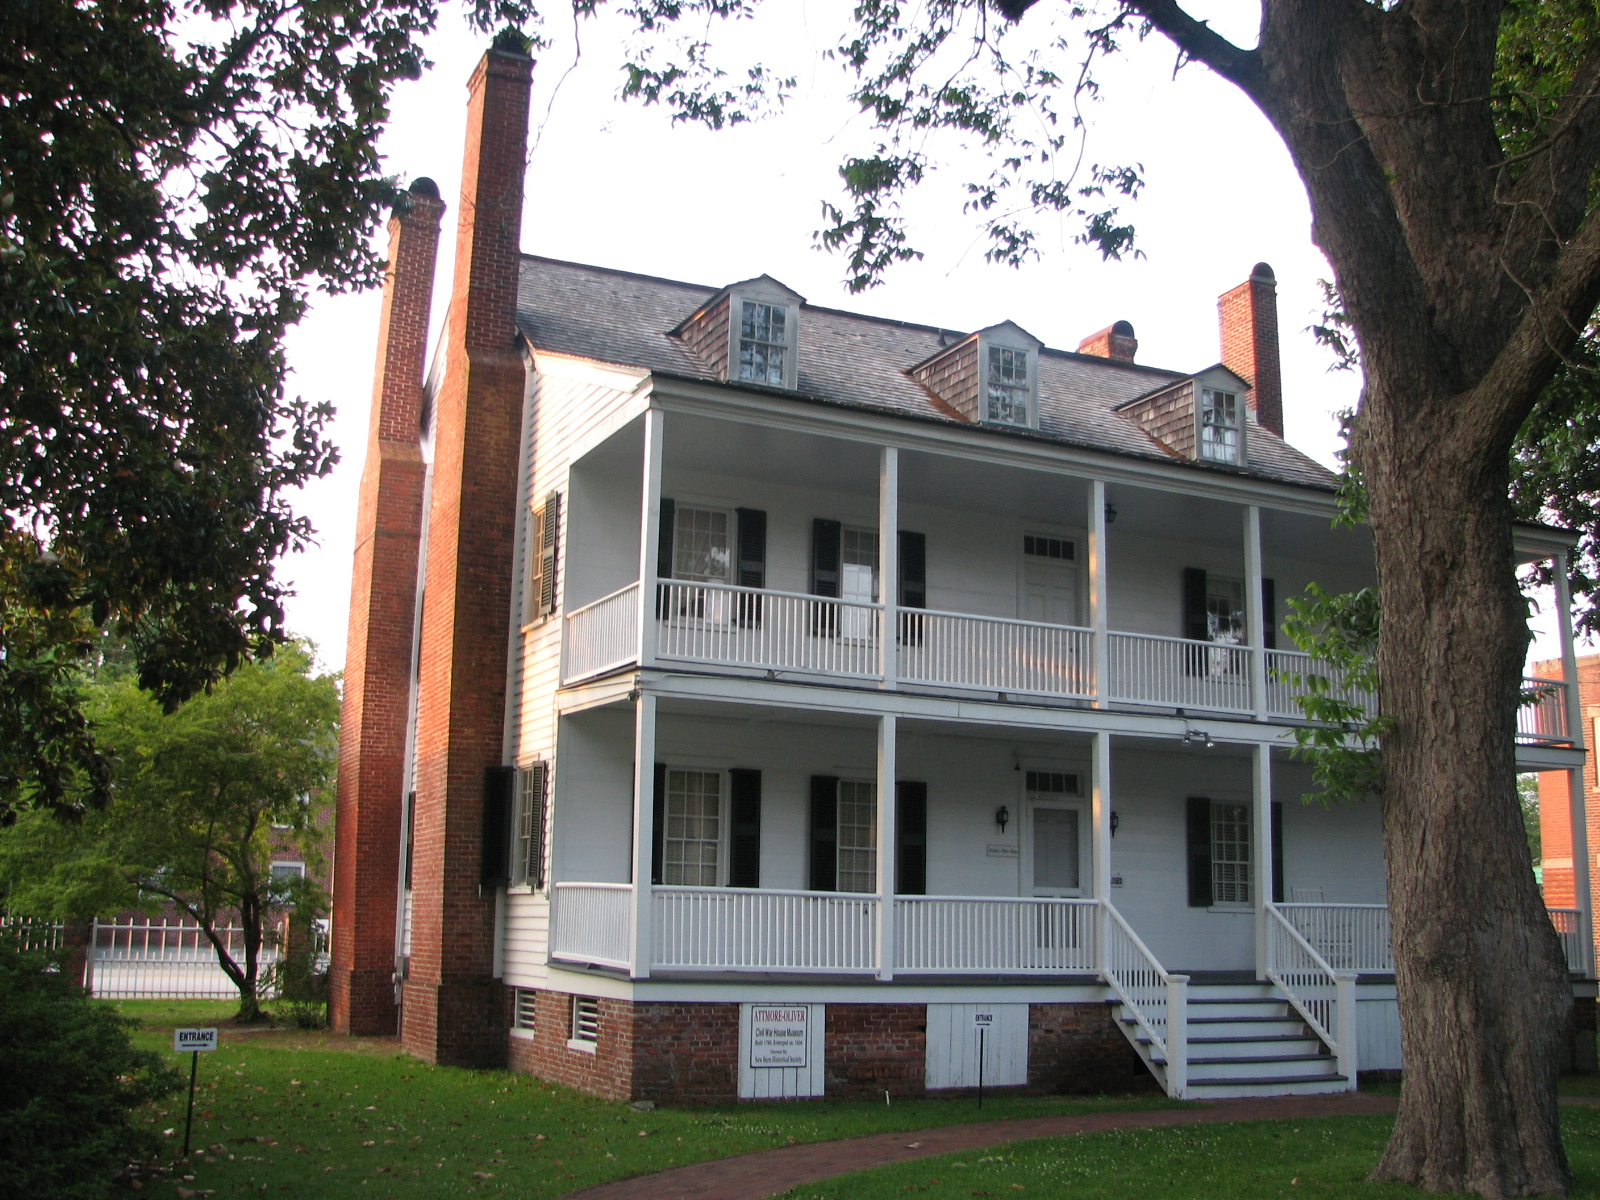 Three families lived on the property starting with Chapman family in 1790. In 1834 the Altmore family moved in and expanded the house. Later the Oliver family lived in the house and the last descendants sold it to the historical society.